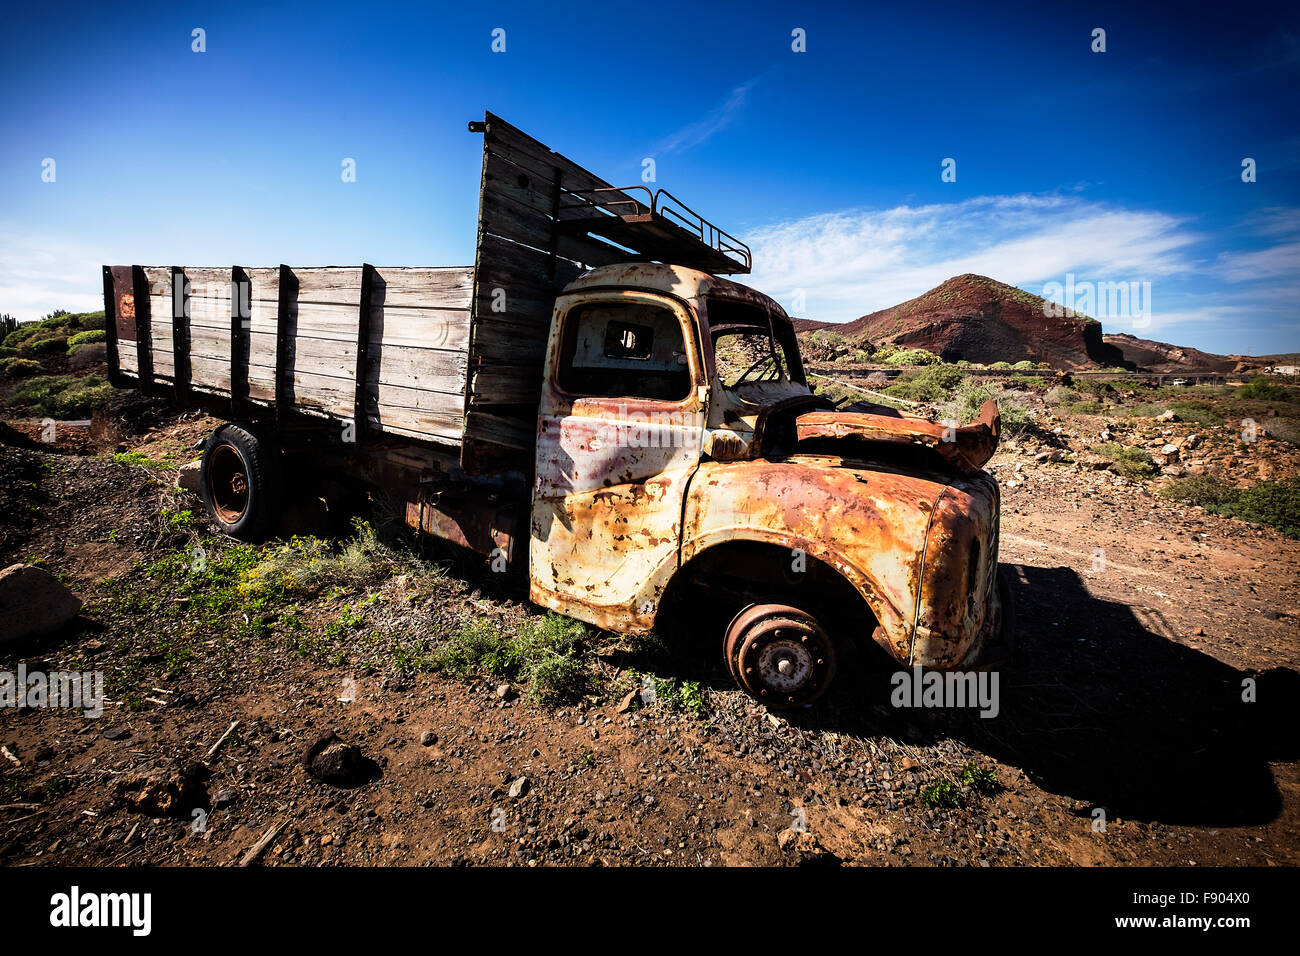 old-truck-abandoned-on-a-finca-near-palm